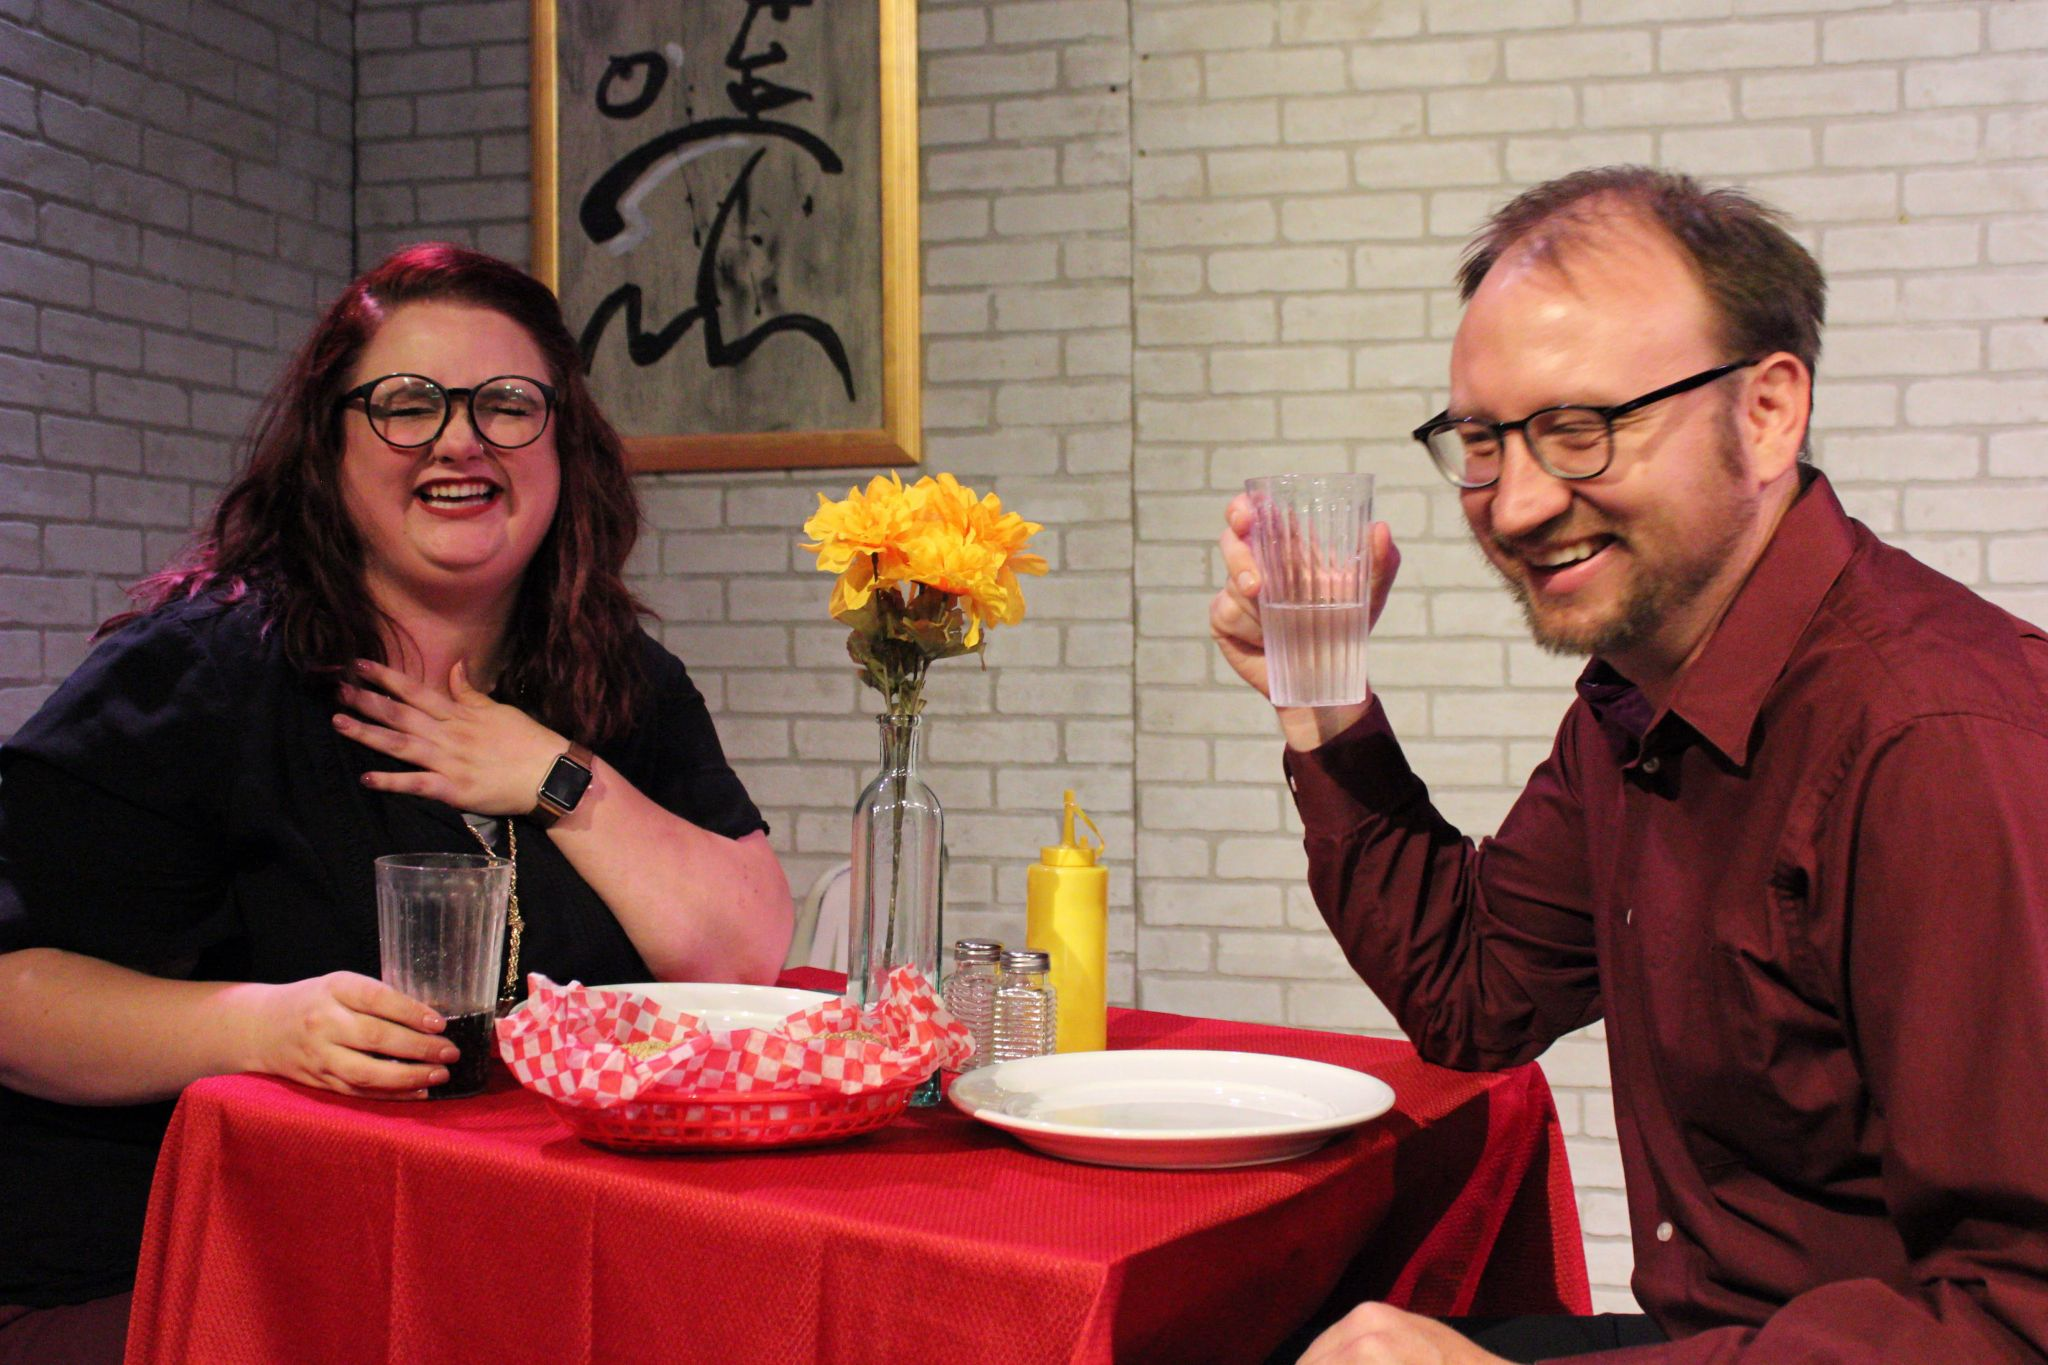 Biting Pasadena comedy explores how society views plus-sized people